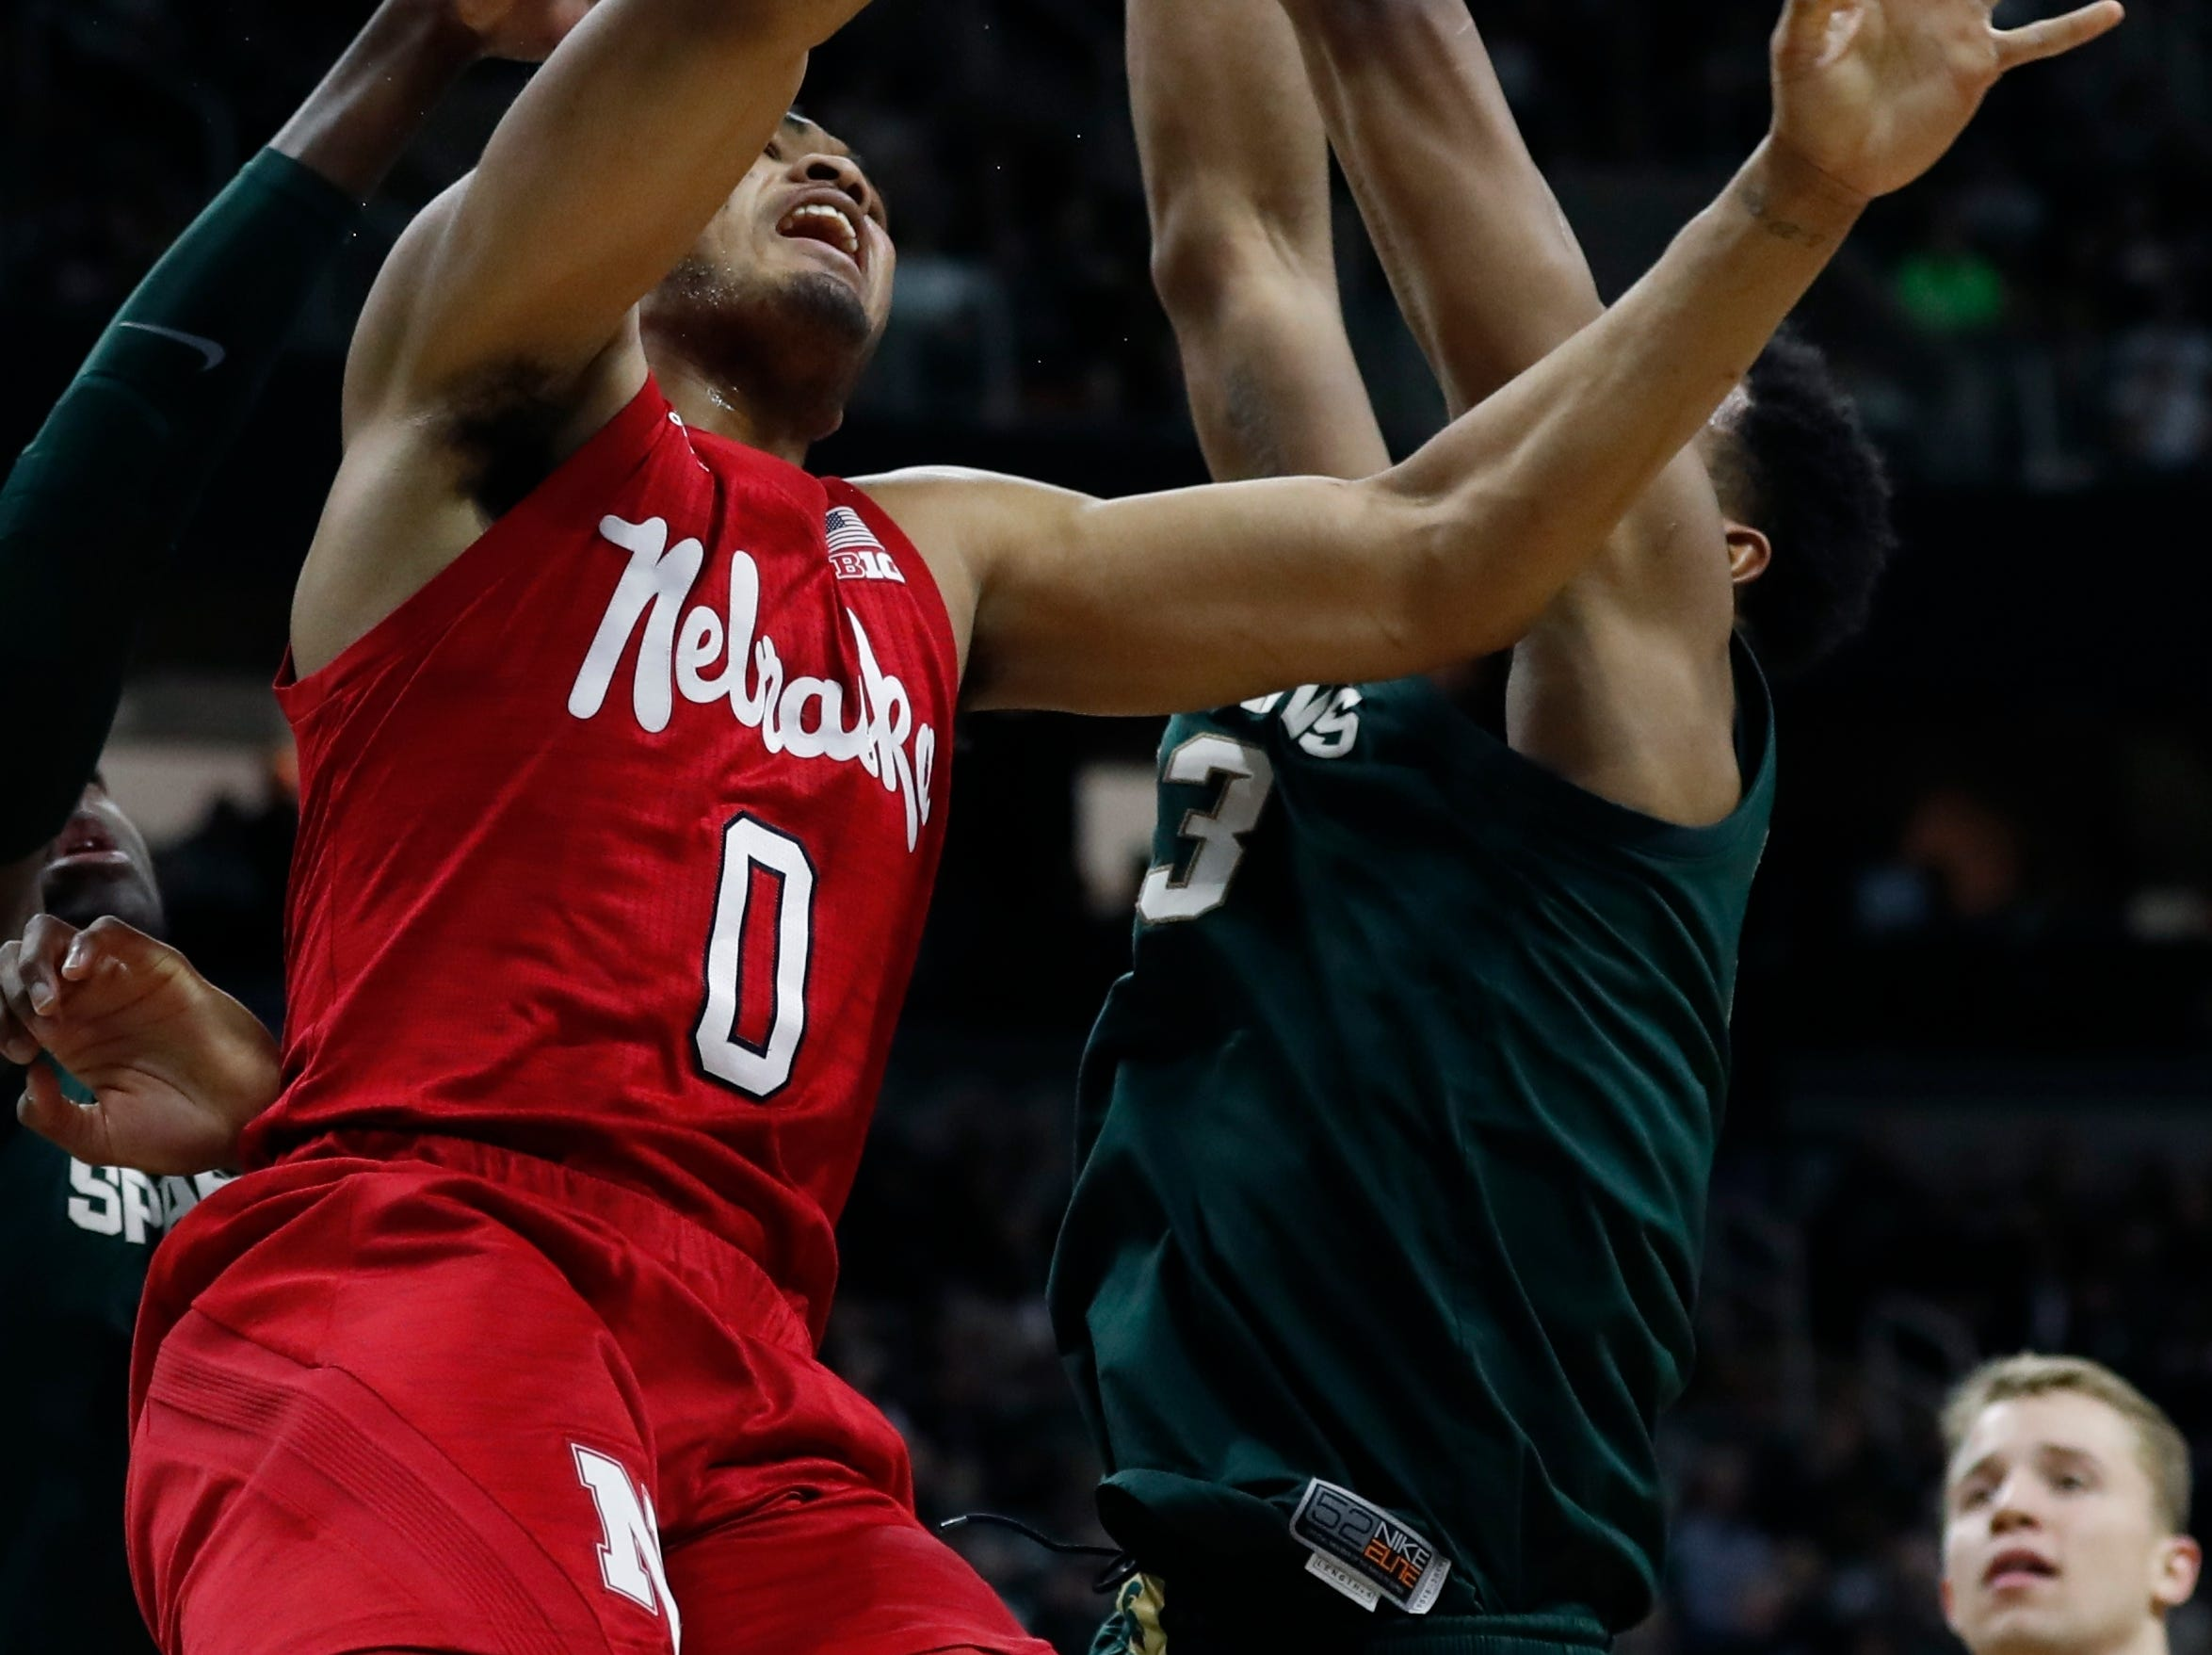 Nebraska guard James Palmer Jr. (0) loses control of the ball after running into Michigan State forwards Gabe Brown, left, and Xavier Tillman (23) during the first half of an NCAA college basketball game.